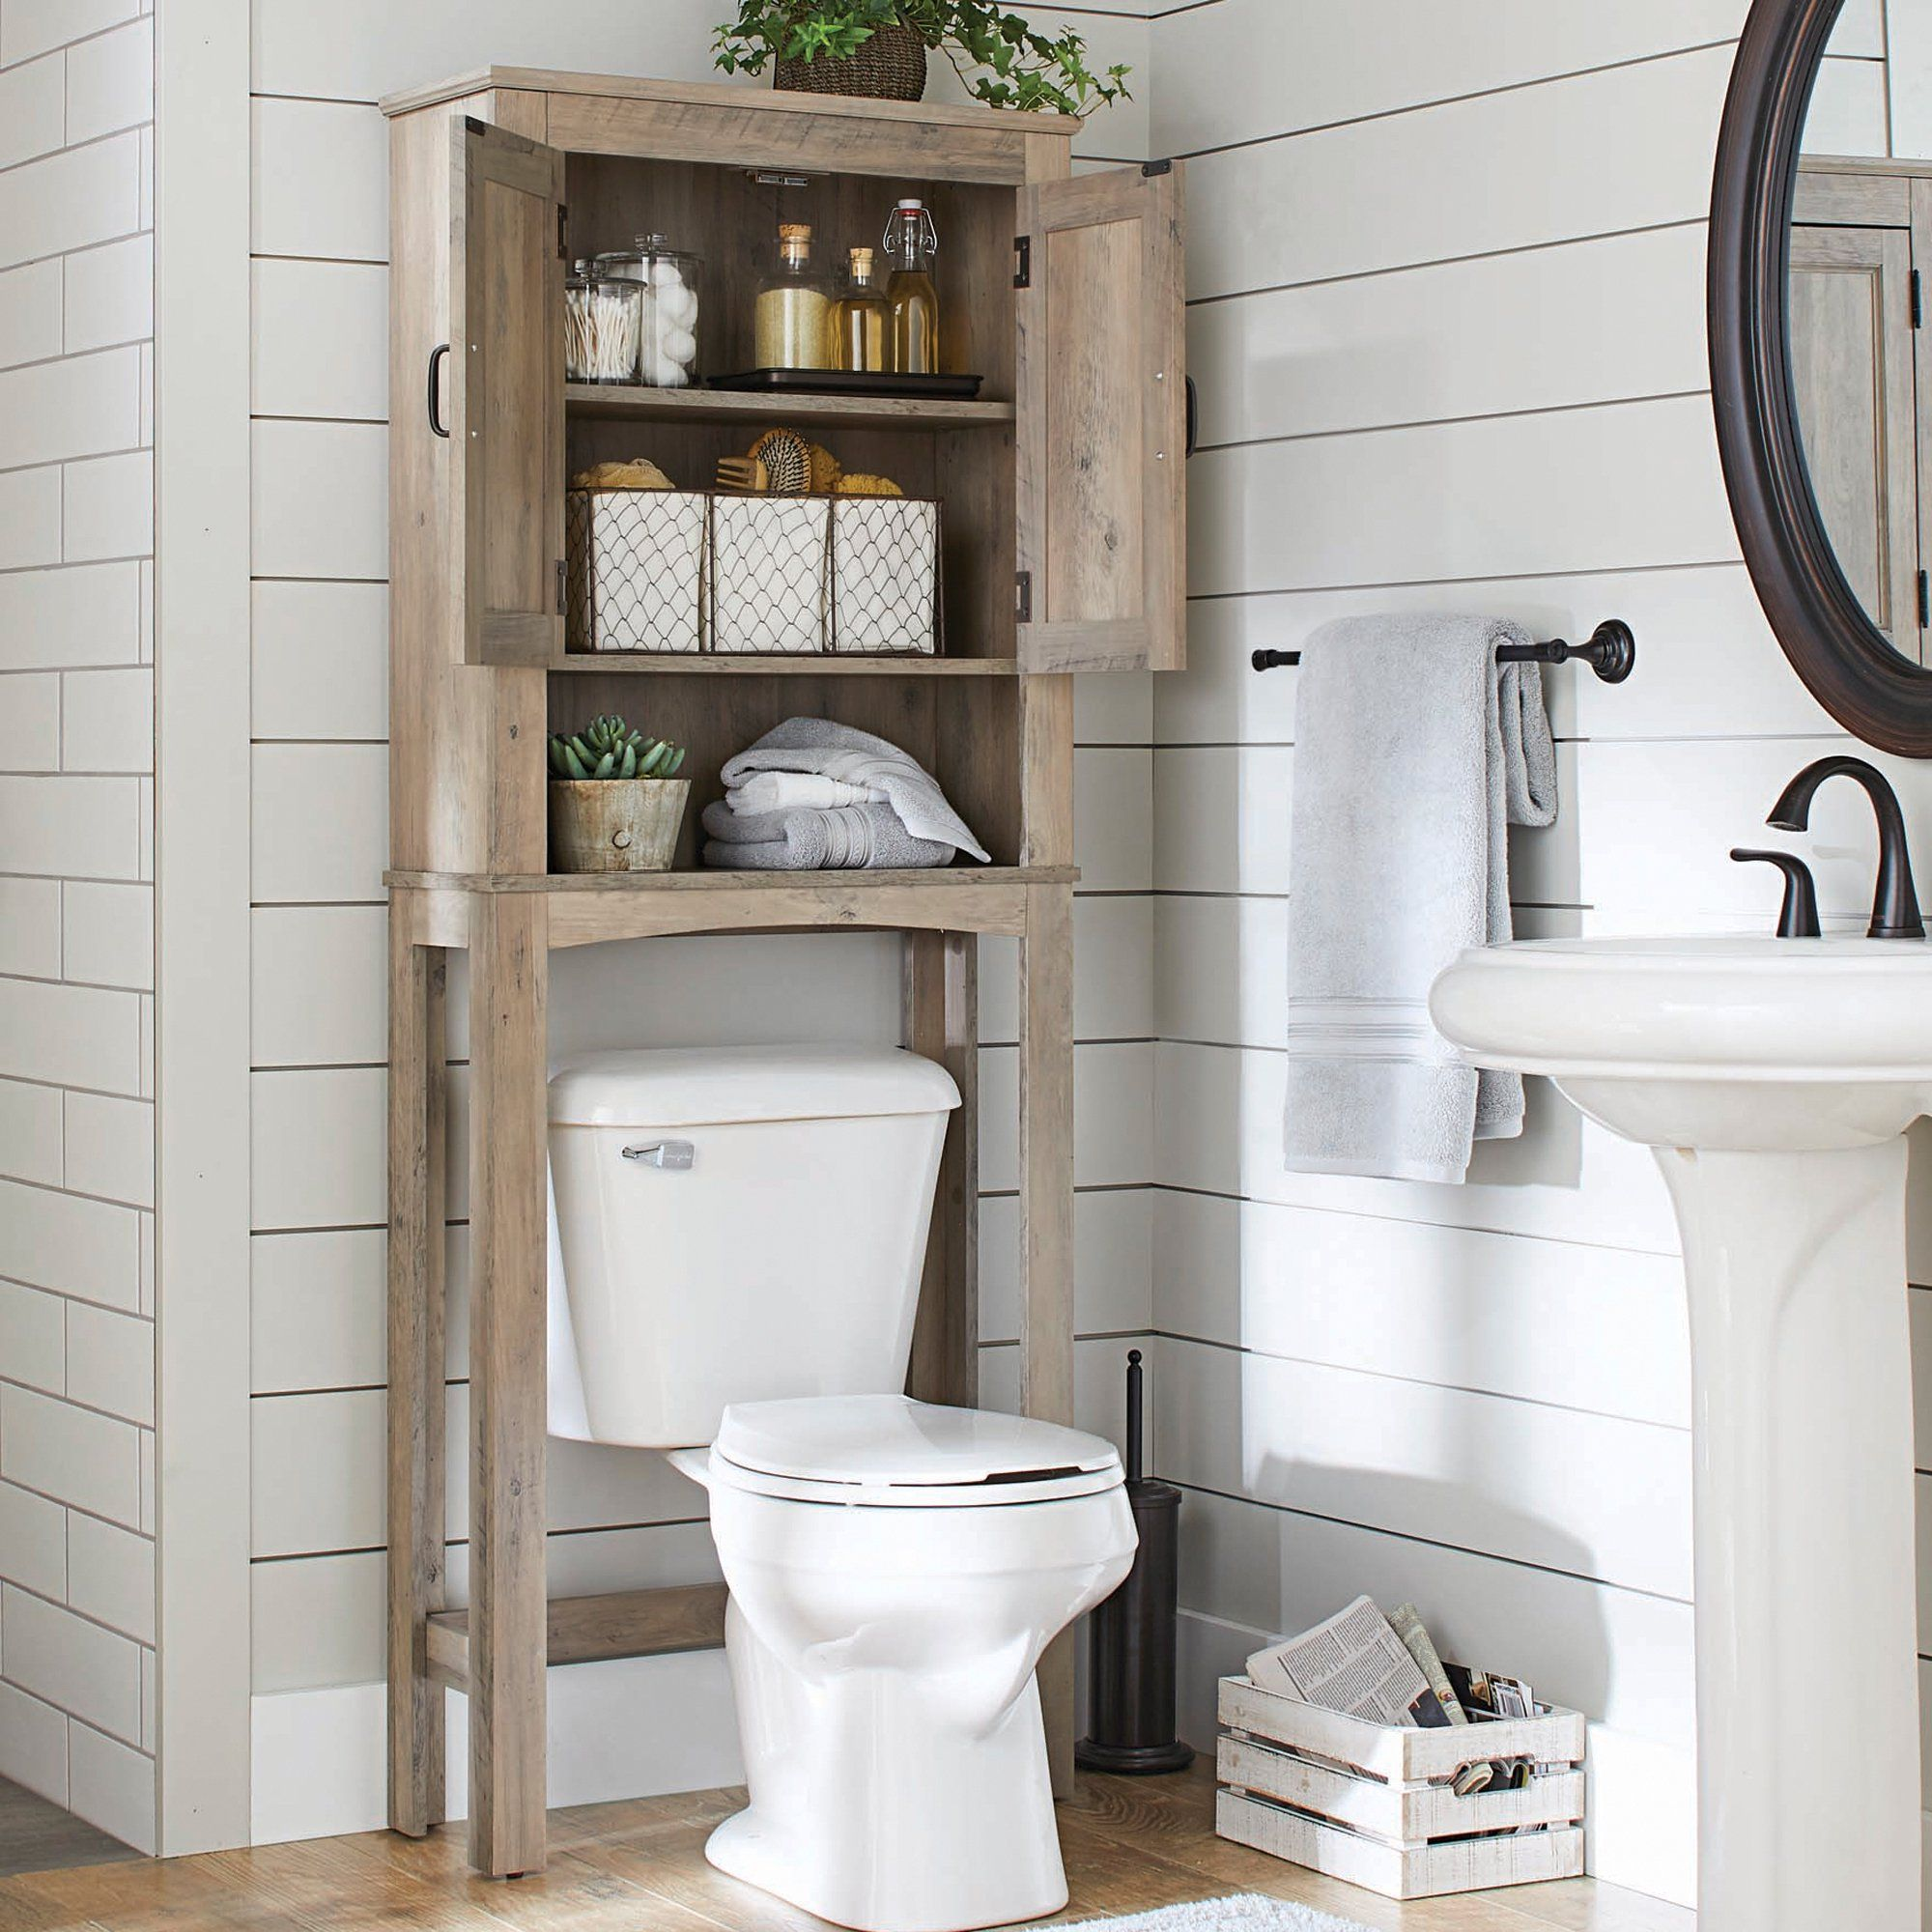 Better Homes Gardens Modern Farmhouse Over The Toilet Bathroom Space Saver With Three Fixed Shelves Rustic Gray Finish Walmart Com In 2021 Bathroom Space Saver Bathroom Space Toilet Shelves [ 2000 x 2000 Pixel ]